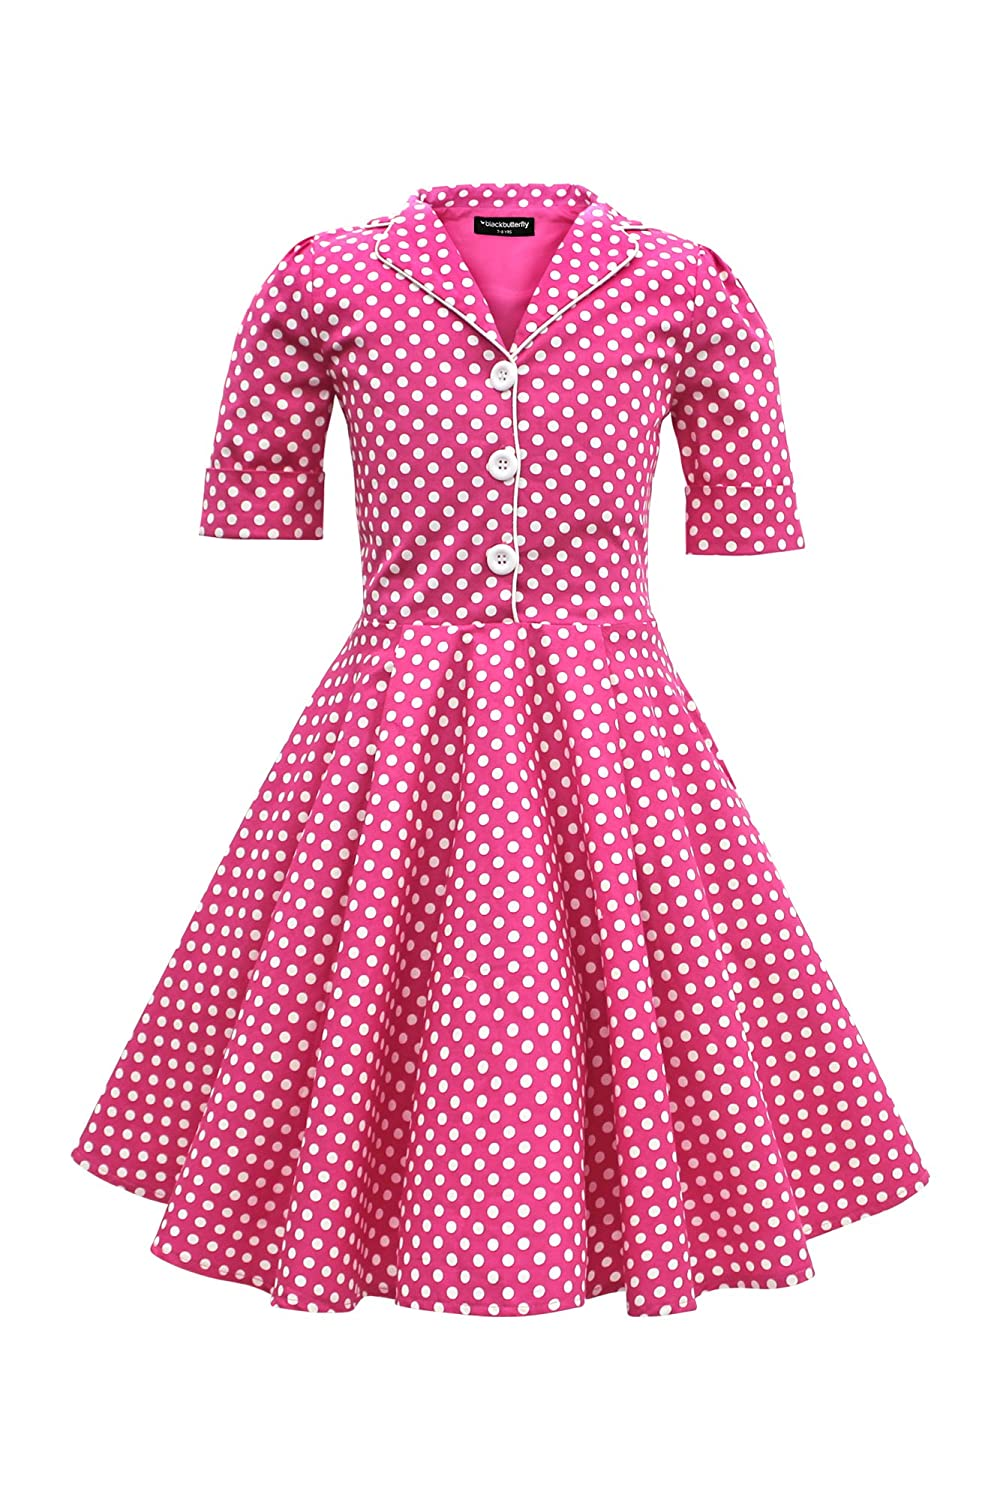 What Did Women Wear in the 1950s? BlackButterfly Kids Sabrina Vintage Polka Dot 50s Girls Dress $35.99 AT vintagedancer.com